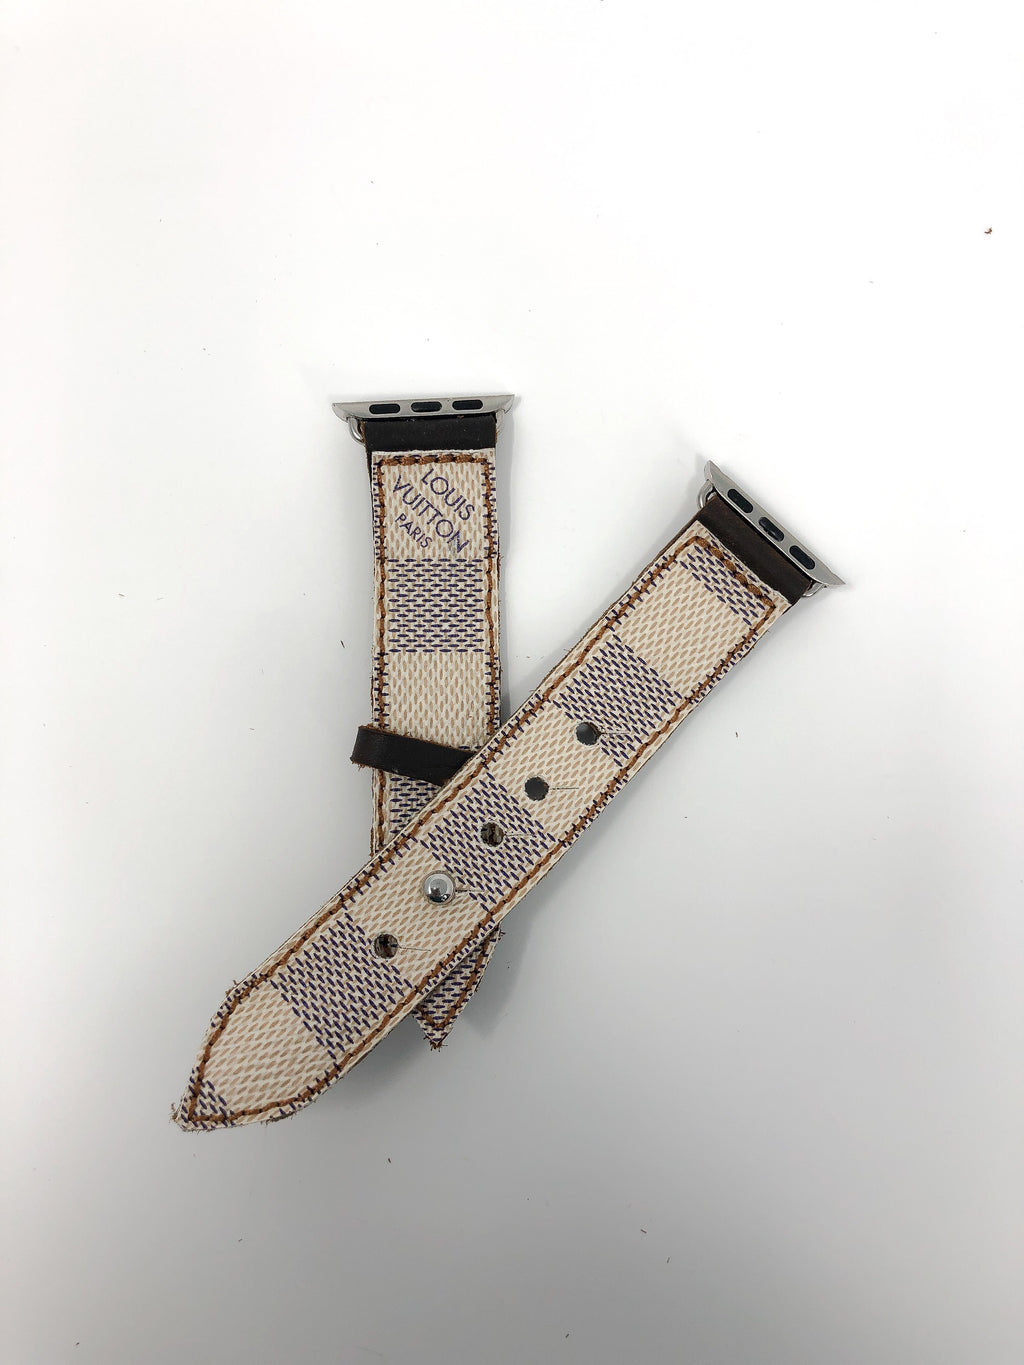 Louis Vuitton Damier Azur Apple Watch Band